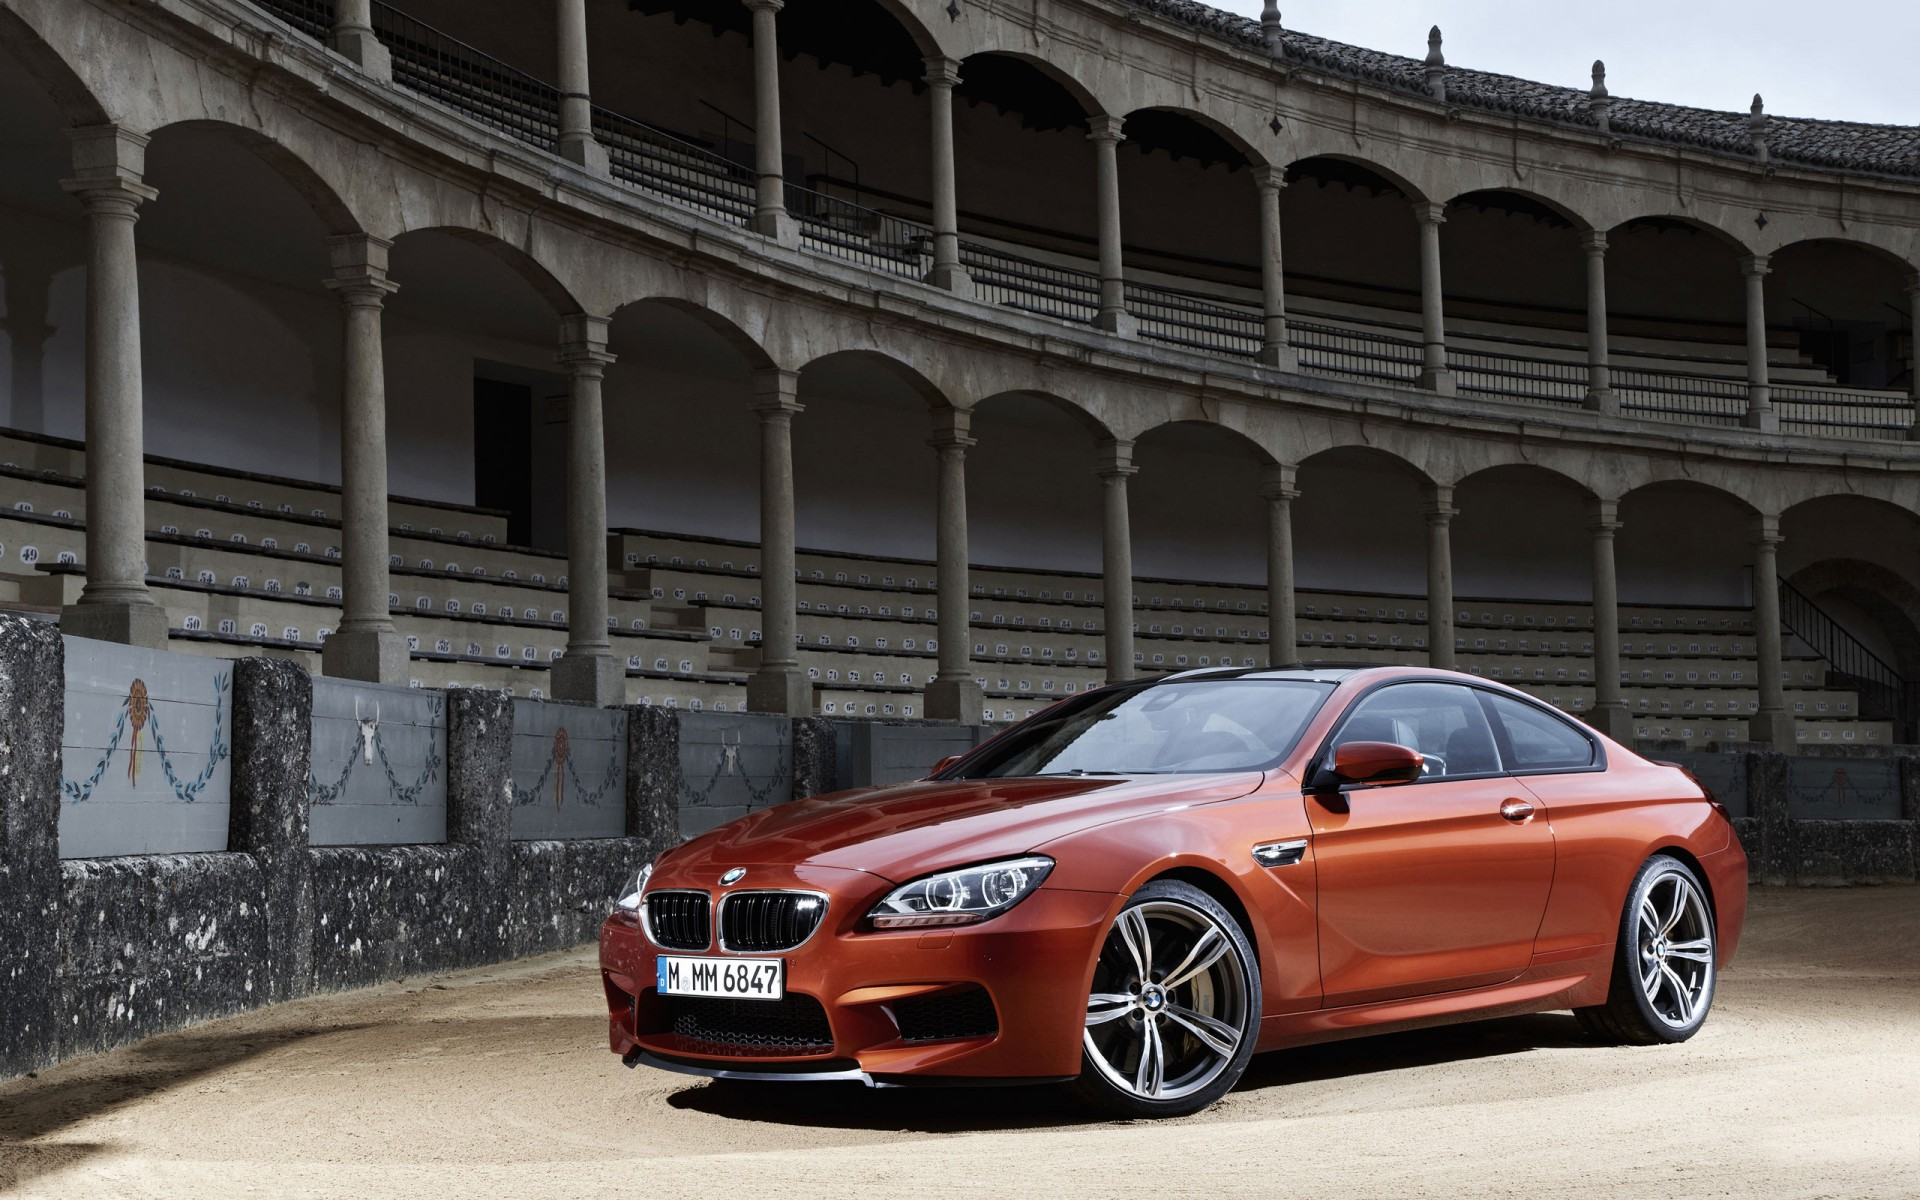 2013 Bmw M6 Coupe Wallpaper Hd Car Wallpapers Id 2814 ...